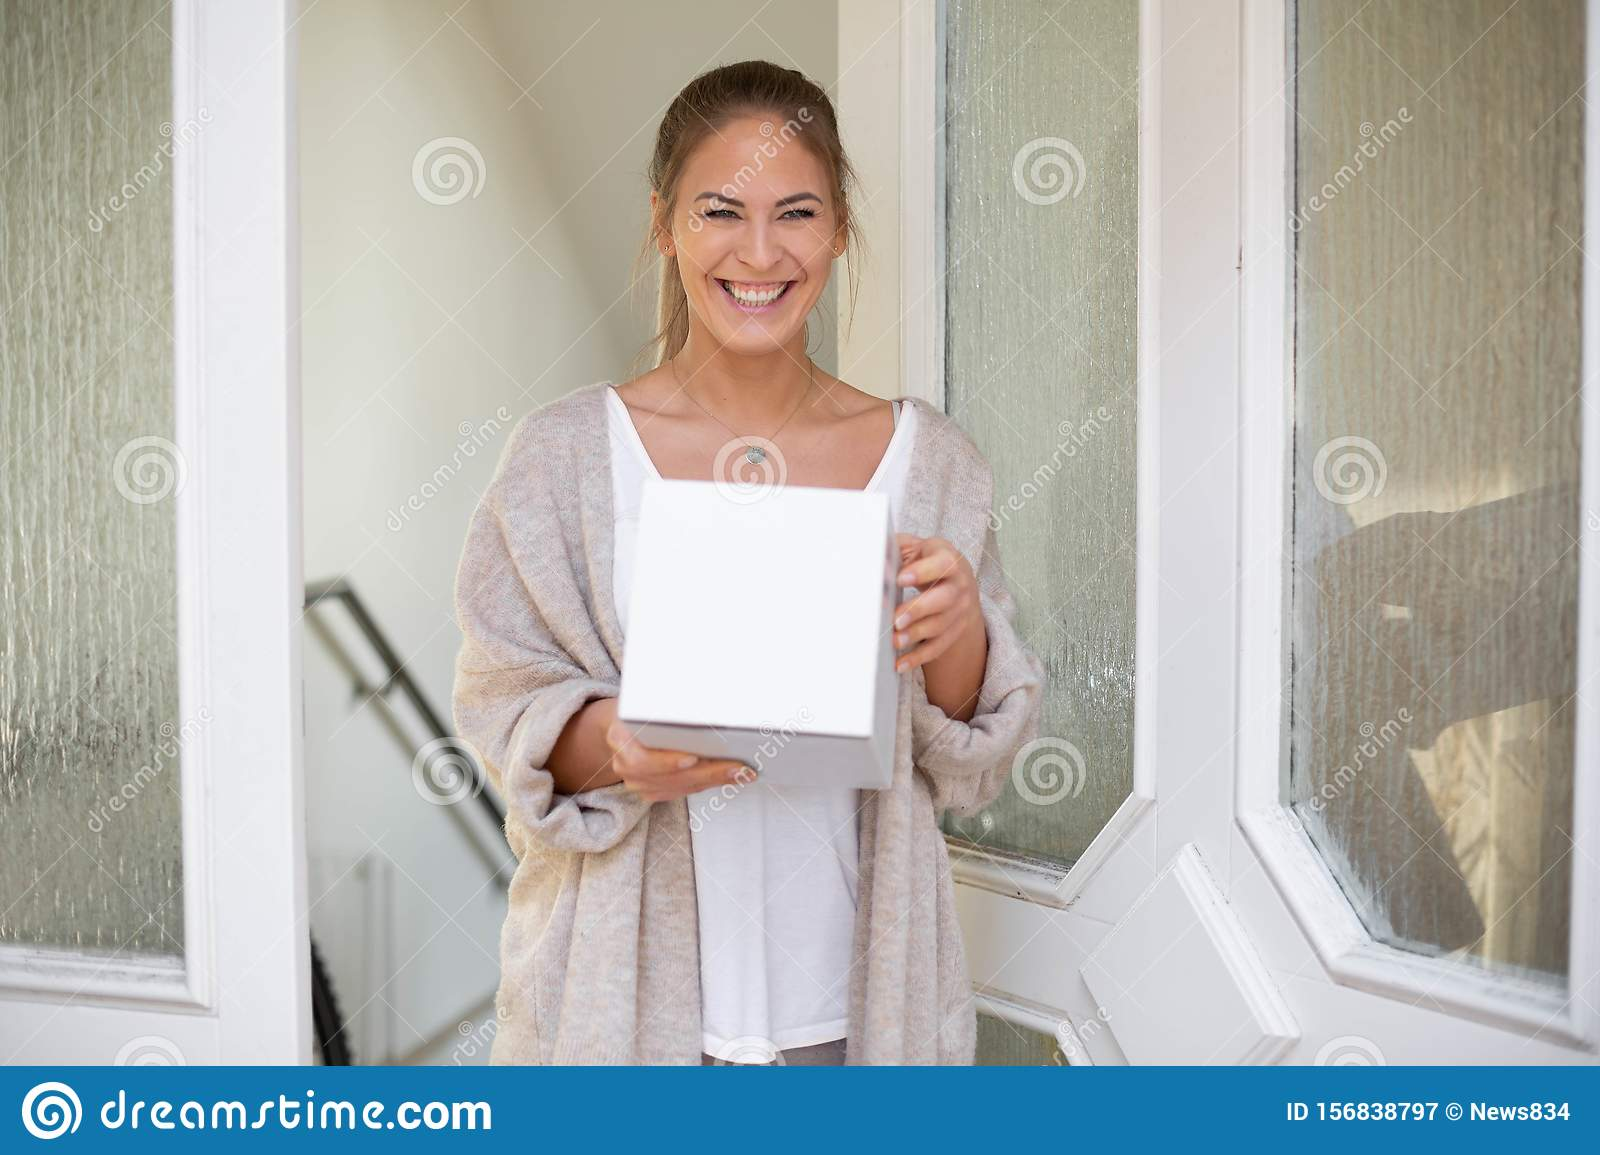 Woman receiving package box